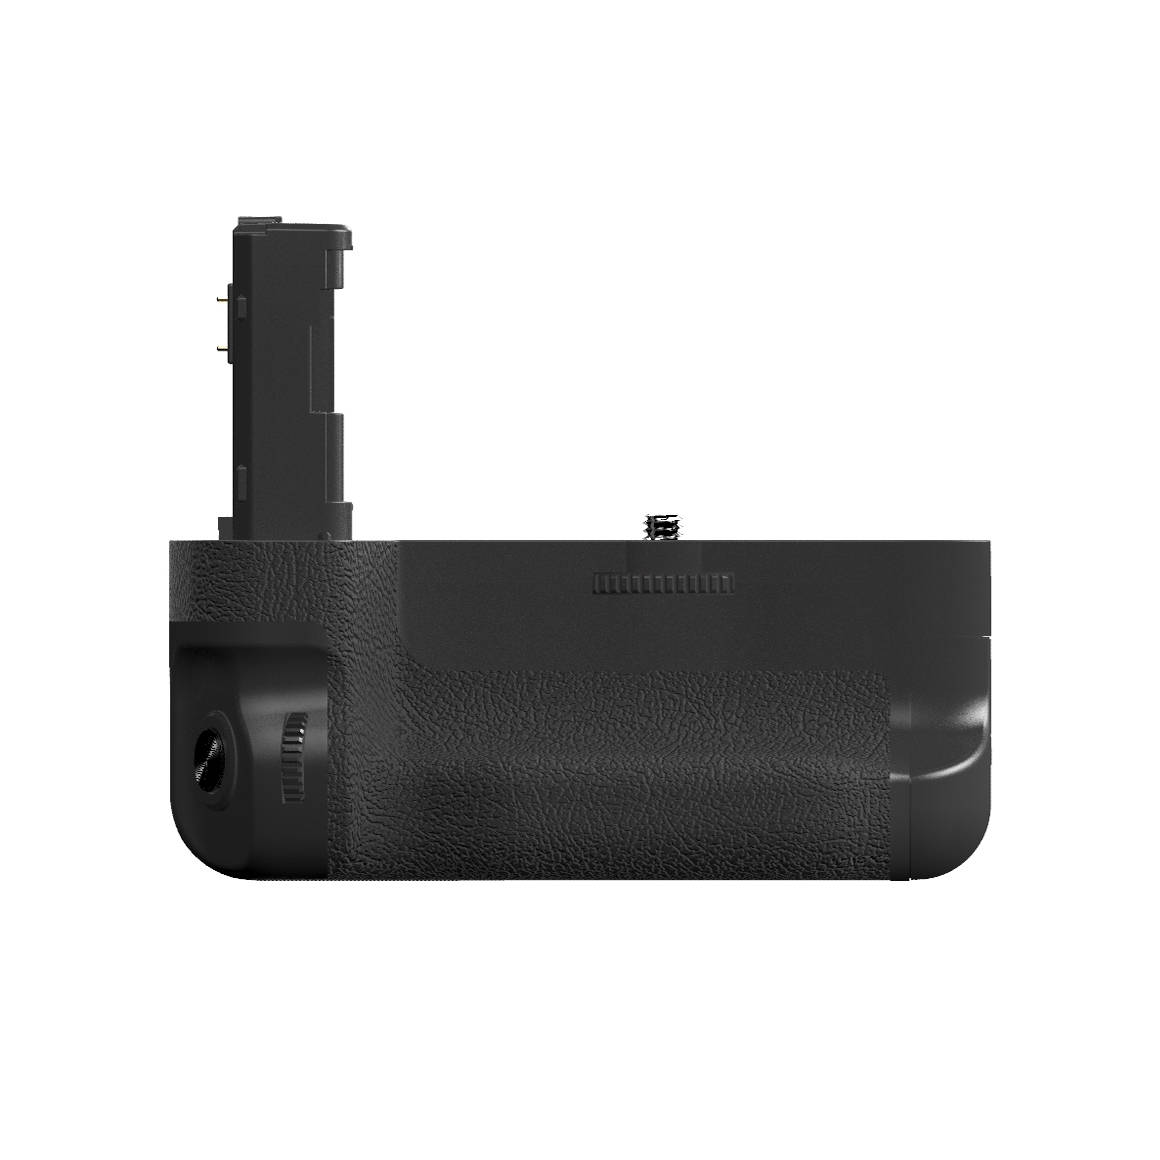 Meike MK-A7II Battery Grip for Sony A7 II A7R II as Sony VG-C2EM camera помада essence matt matt matt lipstick 14 цвет 14 adorable matt variant hex name 915c69